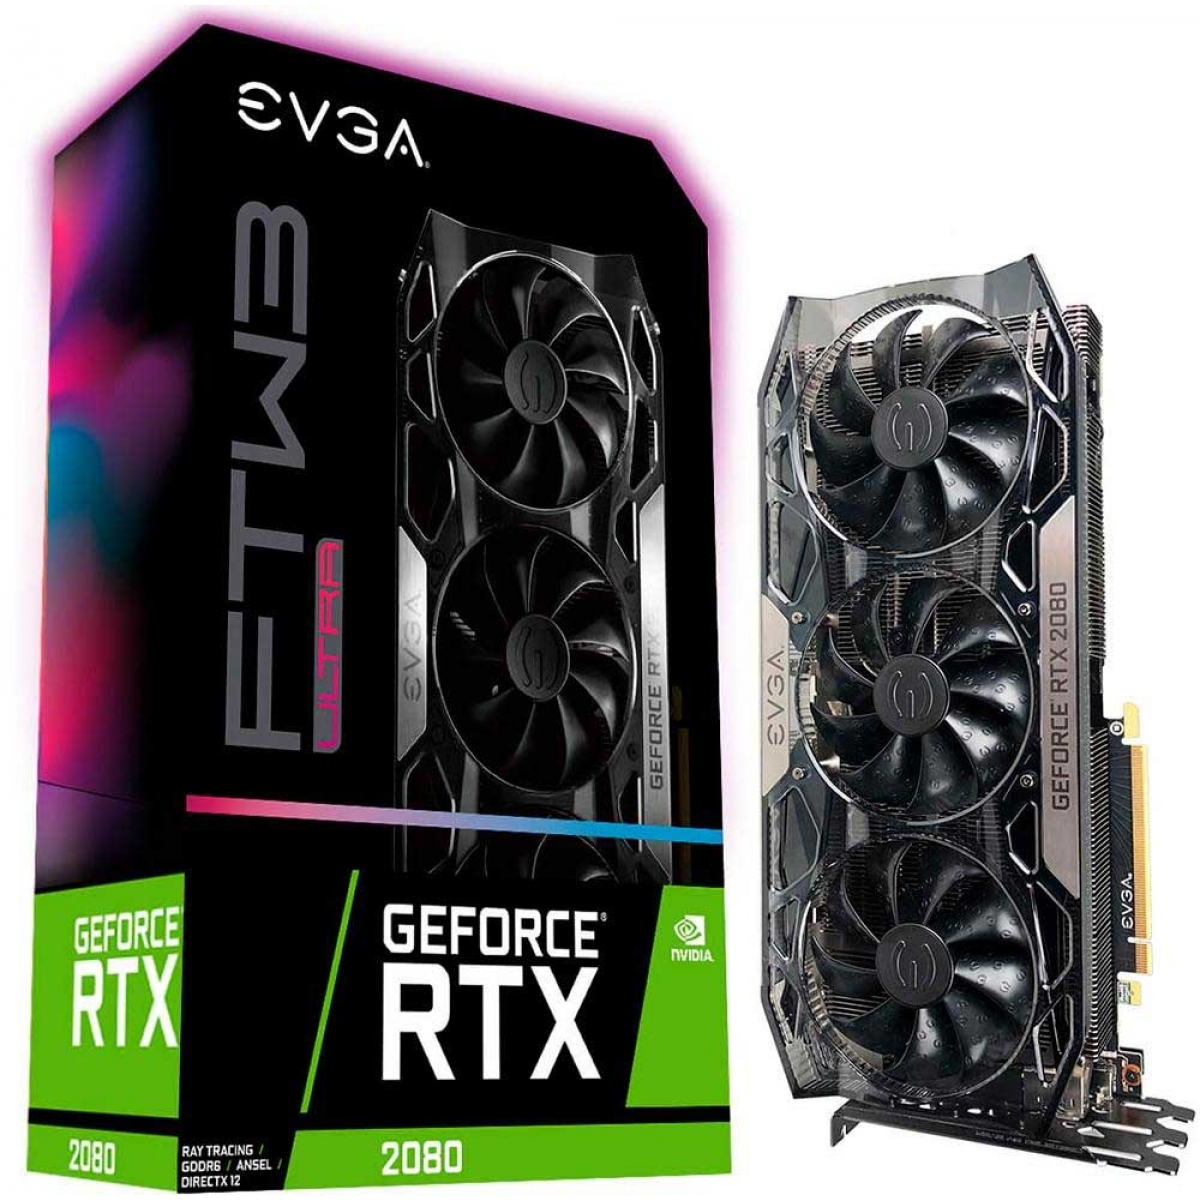 Placa de Vídeo EVGA Geforce RTX 2080 FTW3 Ultra Gaming, 8GB GDDR6, 256Bit, 08G-P4-2287-KR